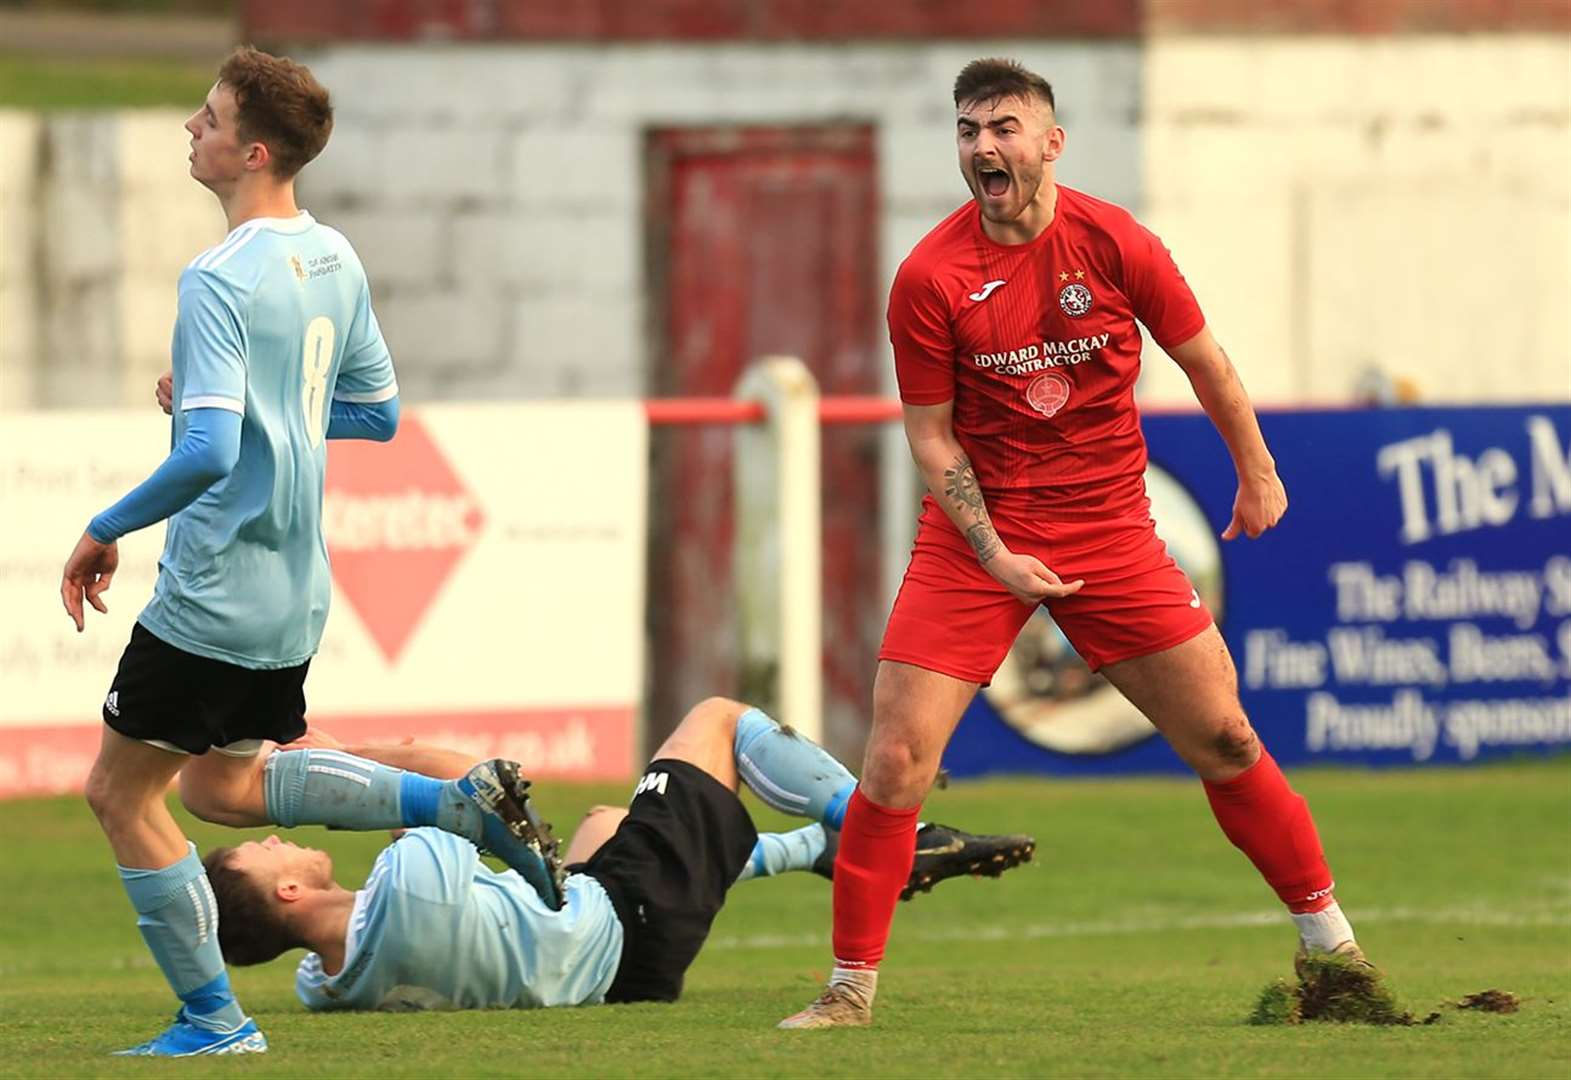 Two goals conceded but Brora remain top